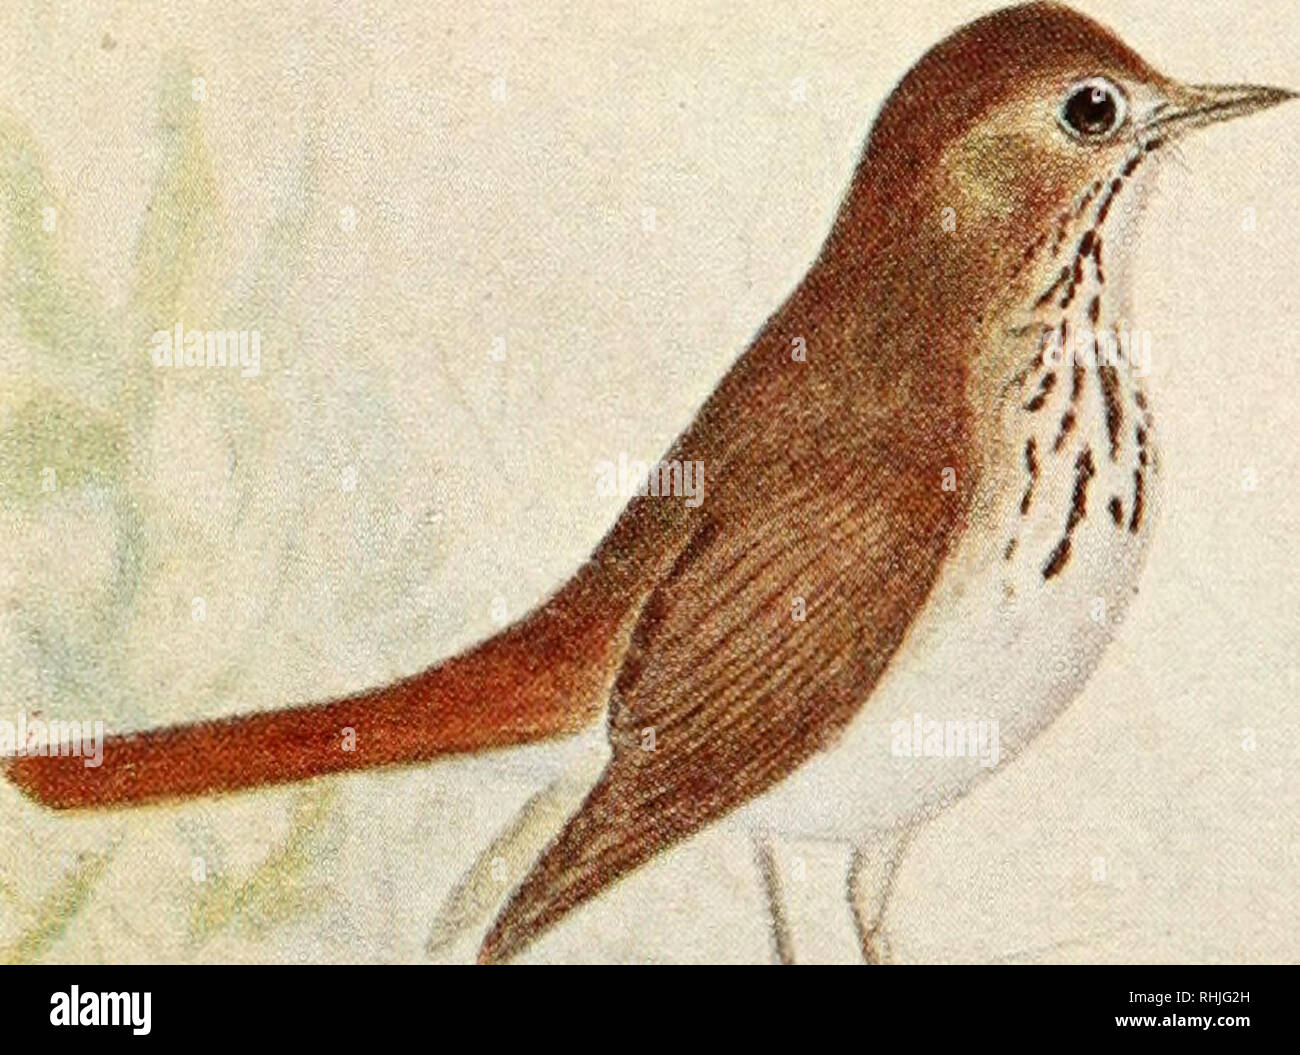 """. Birds of eastern Canada. Birds -- Canada. rr.tjf'â¢â¢â â Â«"""" i'»^ A. Gre>-cheeked Thrush (p. 216). Olive-backed Thrush (p. 217).. flf^- B. Hermit Thrush (p. 217).. Please note that these images are extracted from scanned page images that may have been digitally enhanced for readability - coloration and appearance of these illustrations may not perfectly resemble the original work.. Taverner, Percy Algernon, 1875-1947. Ottawa, J. de L. Tachprinter Stock Photo"""